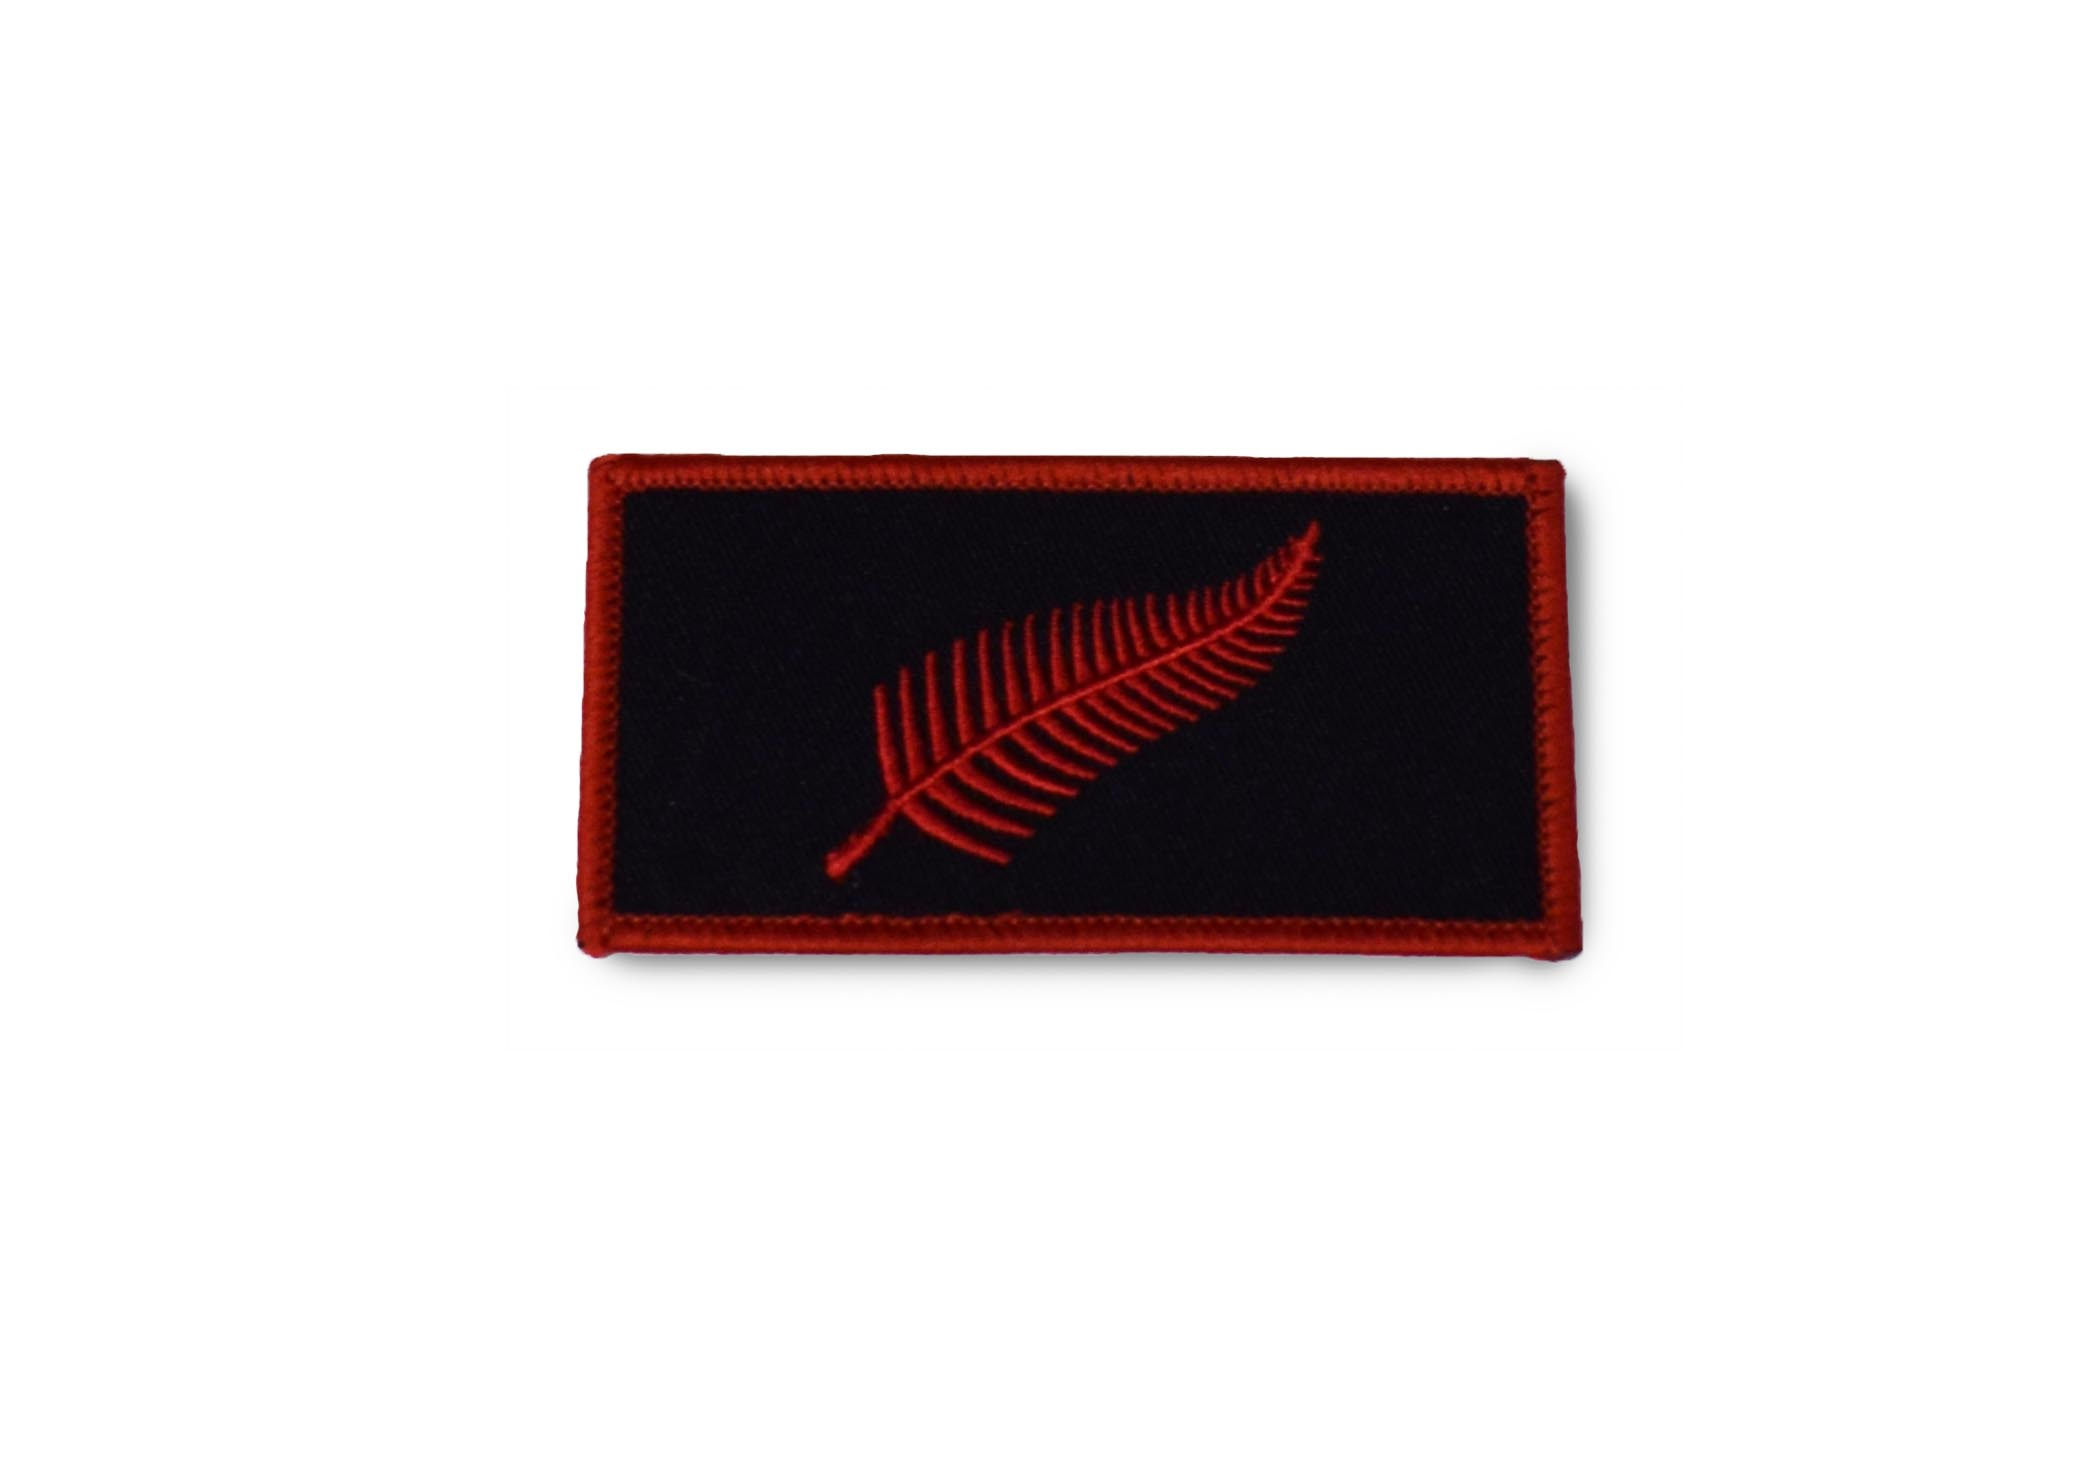 Buy Silver Fern Coloured Patch in NZ New Zealand.